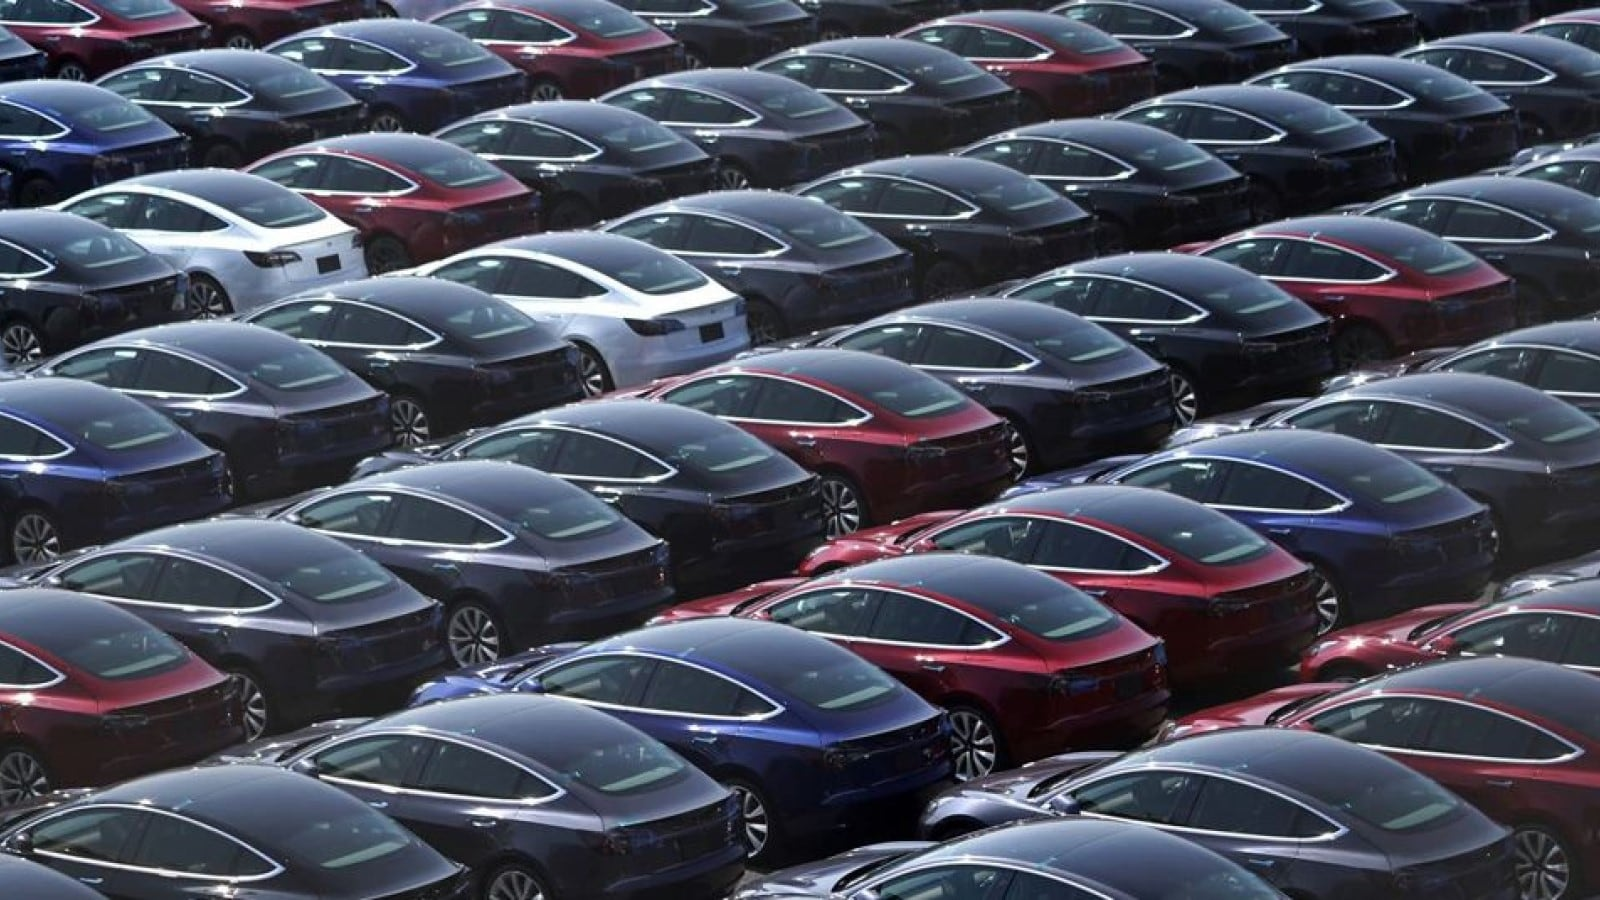 Automakers Plan to Build Fewer Cars to Keep Prices Higher